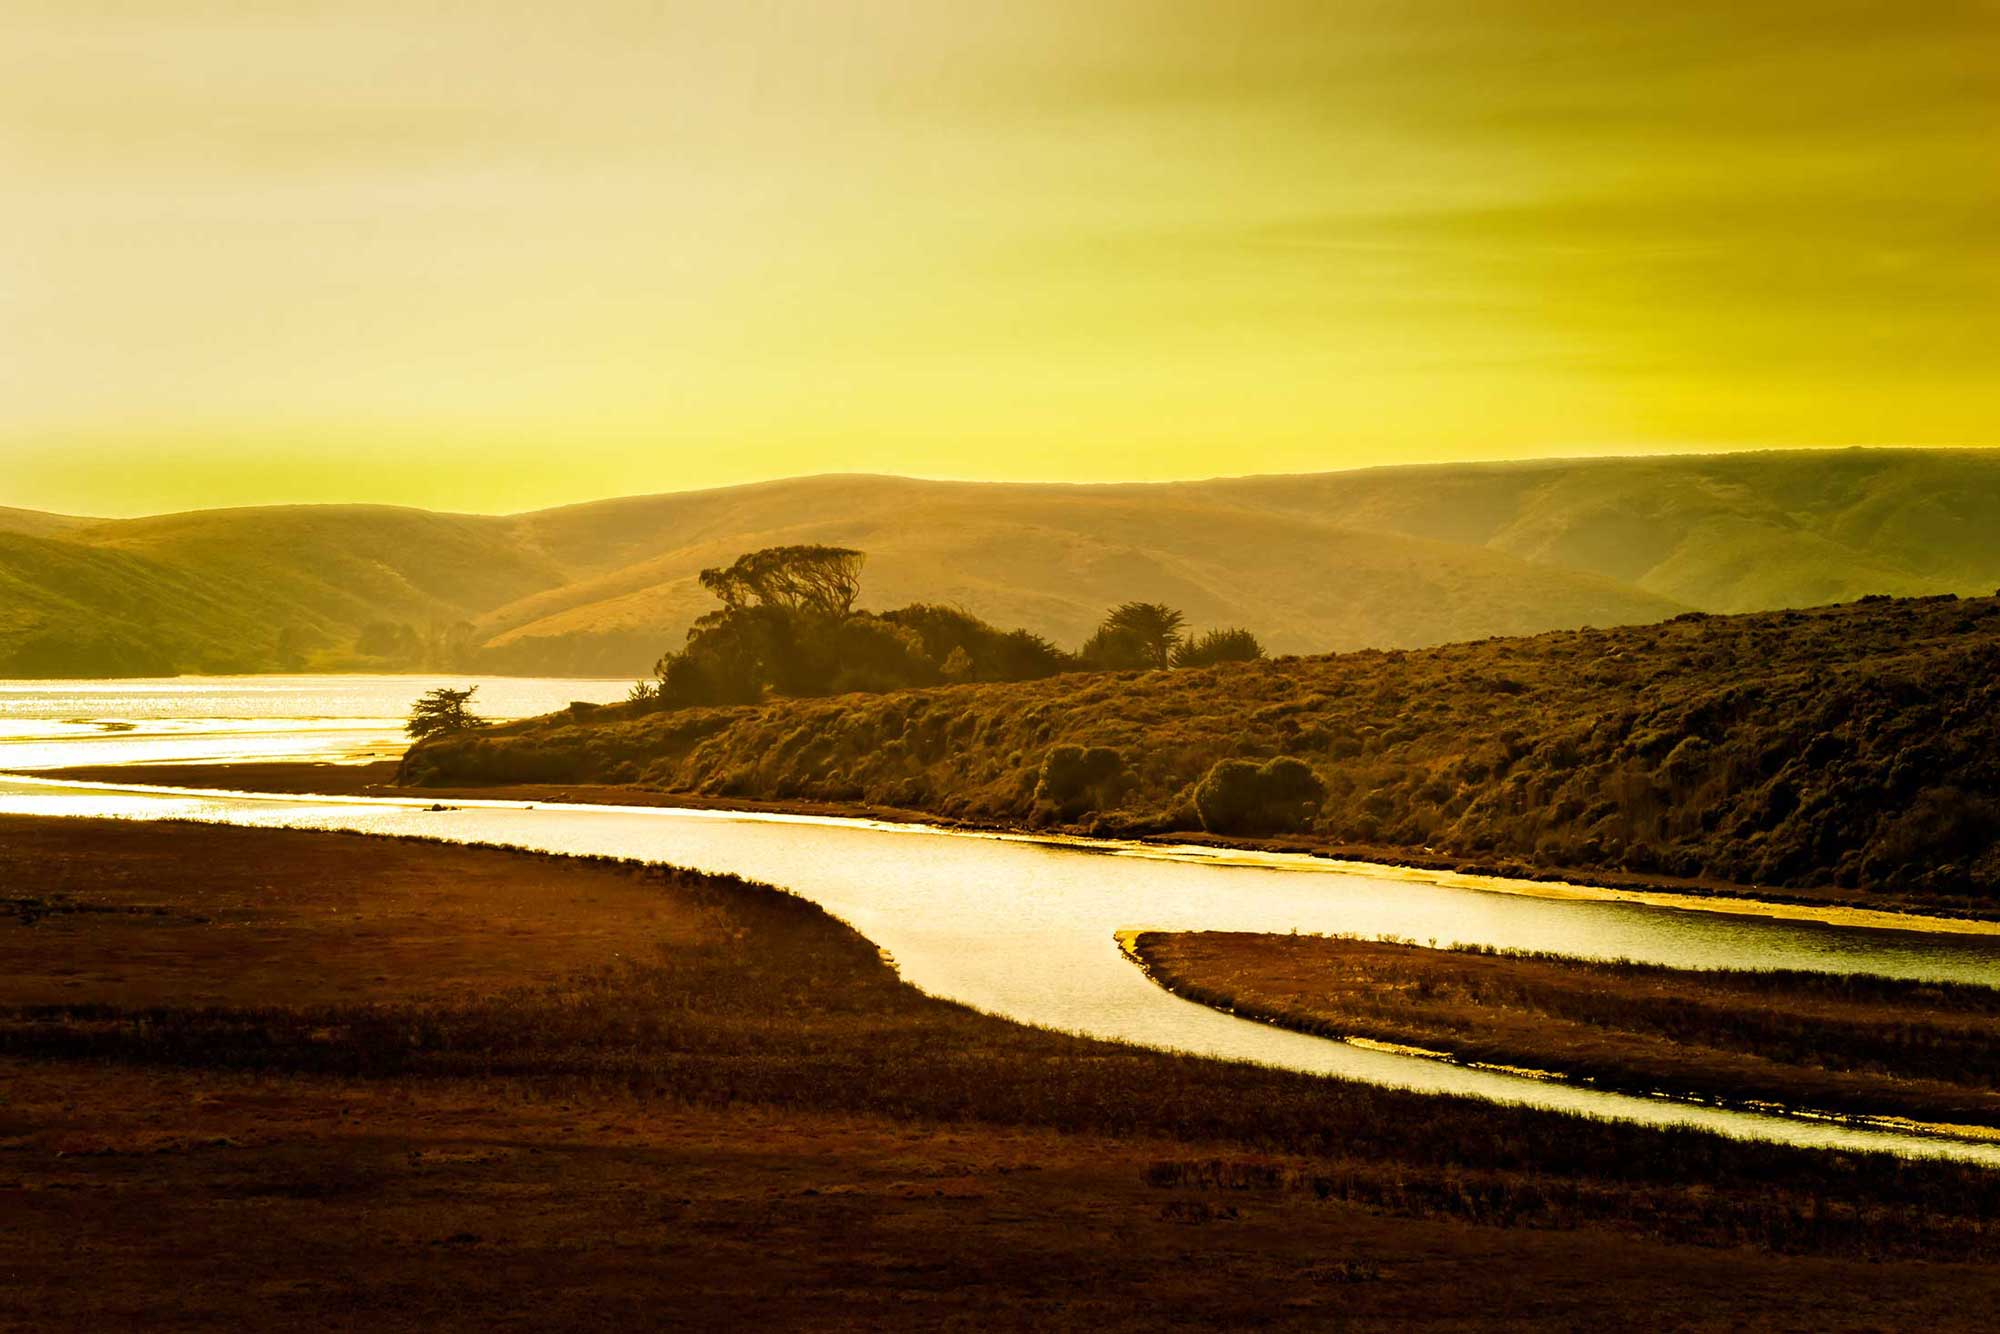 Photo - Stream of Gold, Sunset Landscape In California